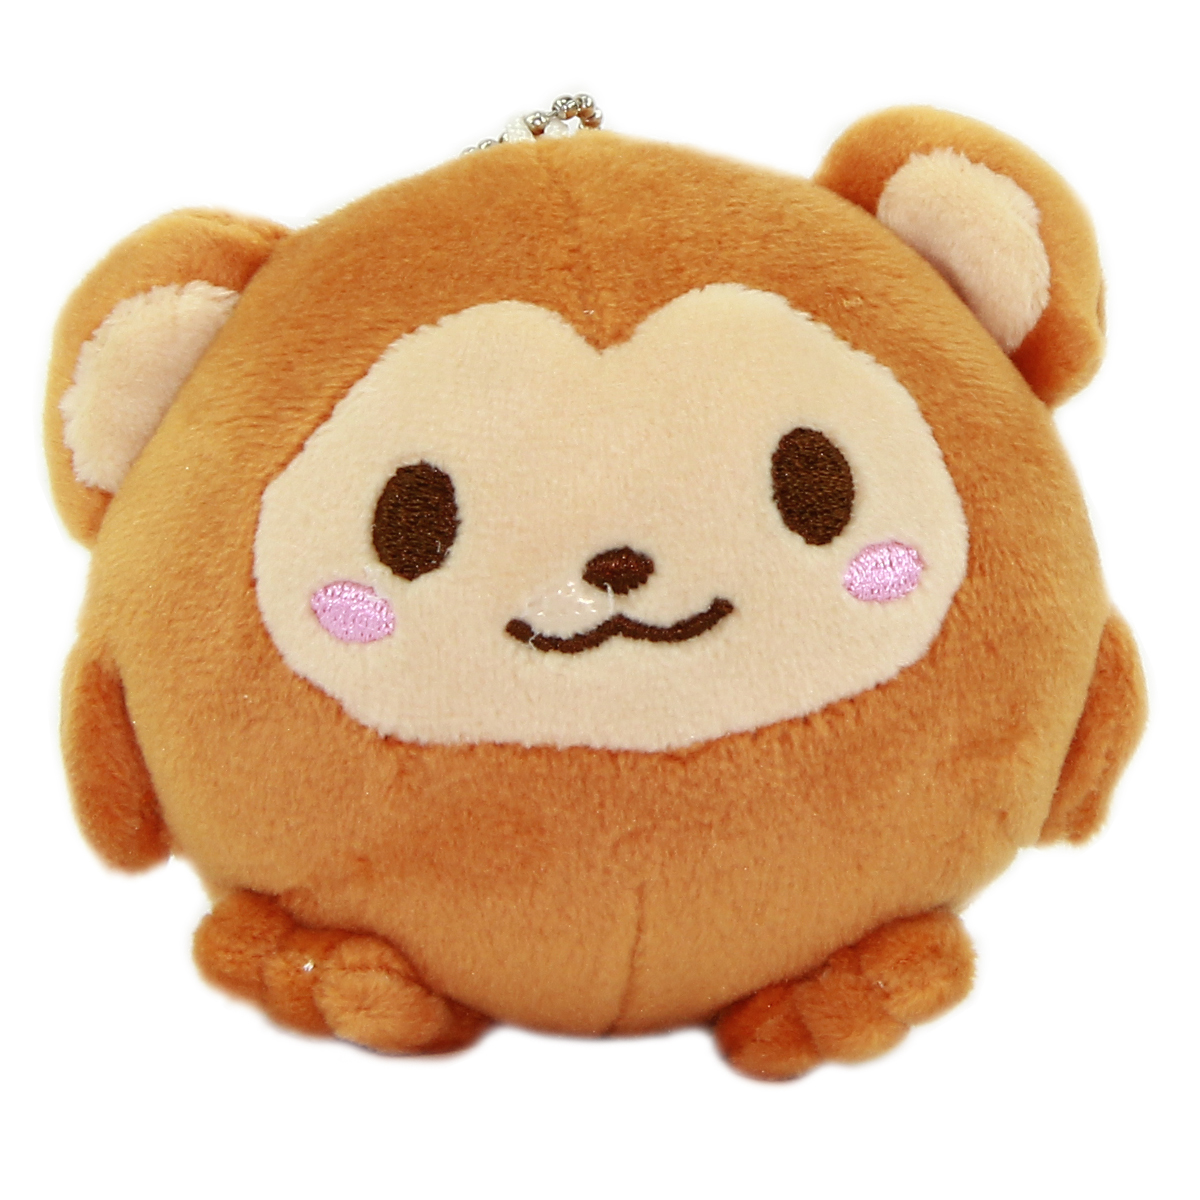 Monkey Plush Doll Kawaii Stuffed Animal Soft Squishy Plushie Mochi Brown